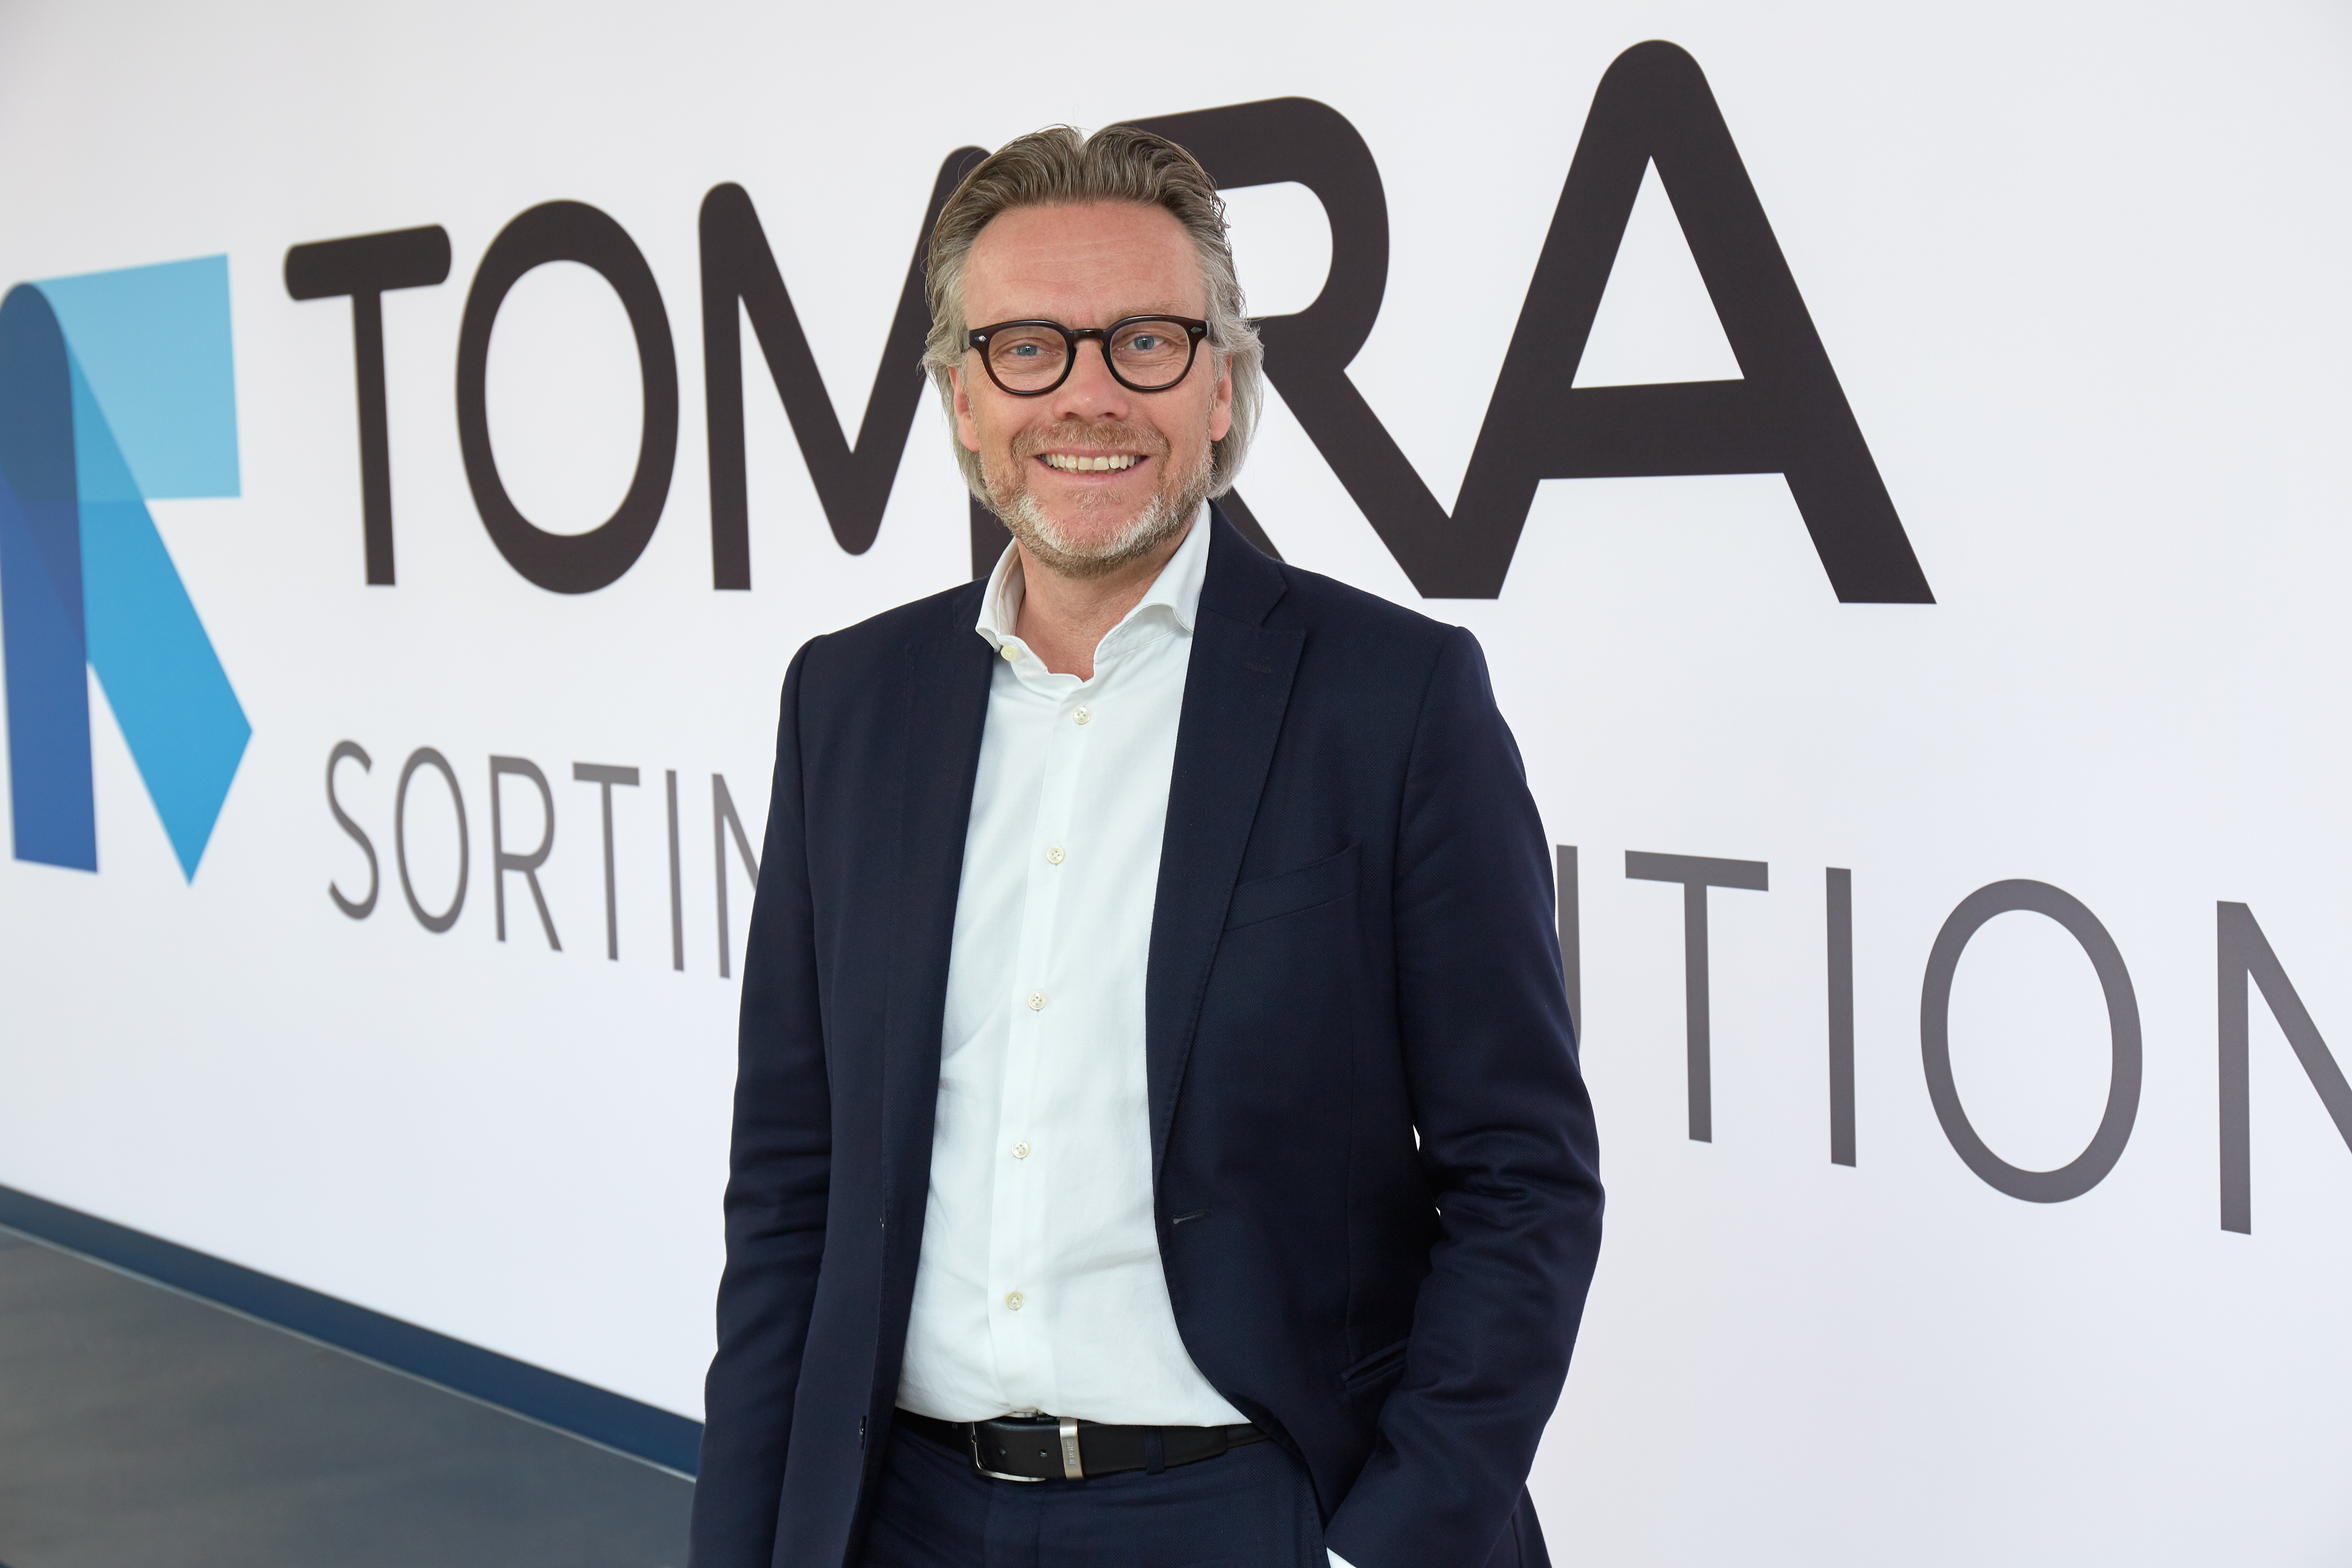 TOMRA_Tom Eng - SVP and Head of TOMRA Recycling